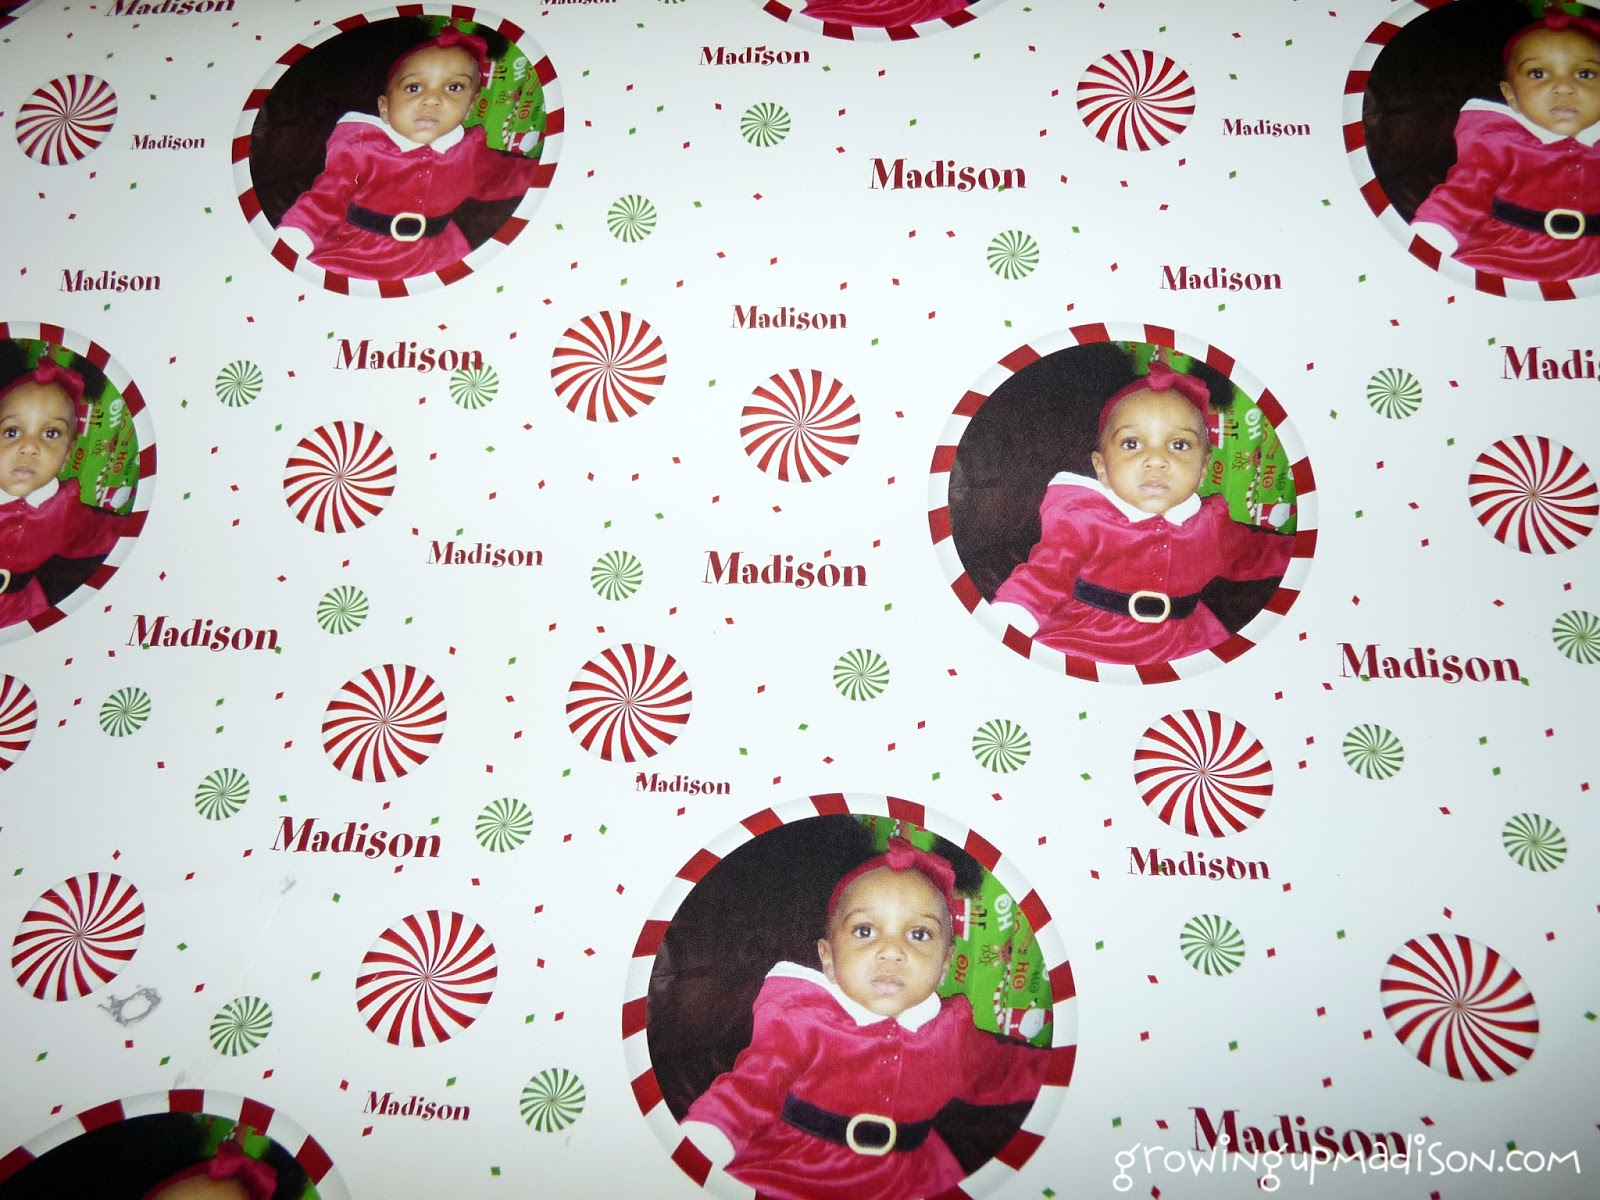 Giftskins Personalized Wrapping Paper #Review #Giveaway Growing